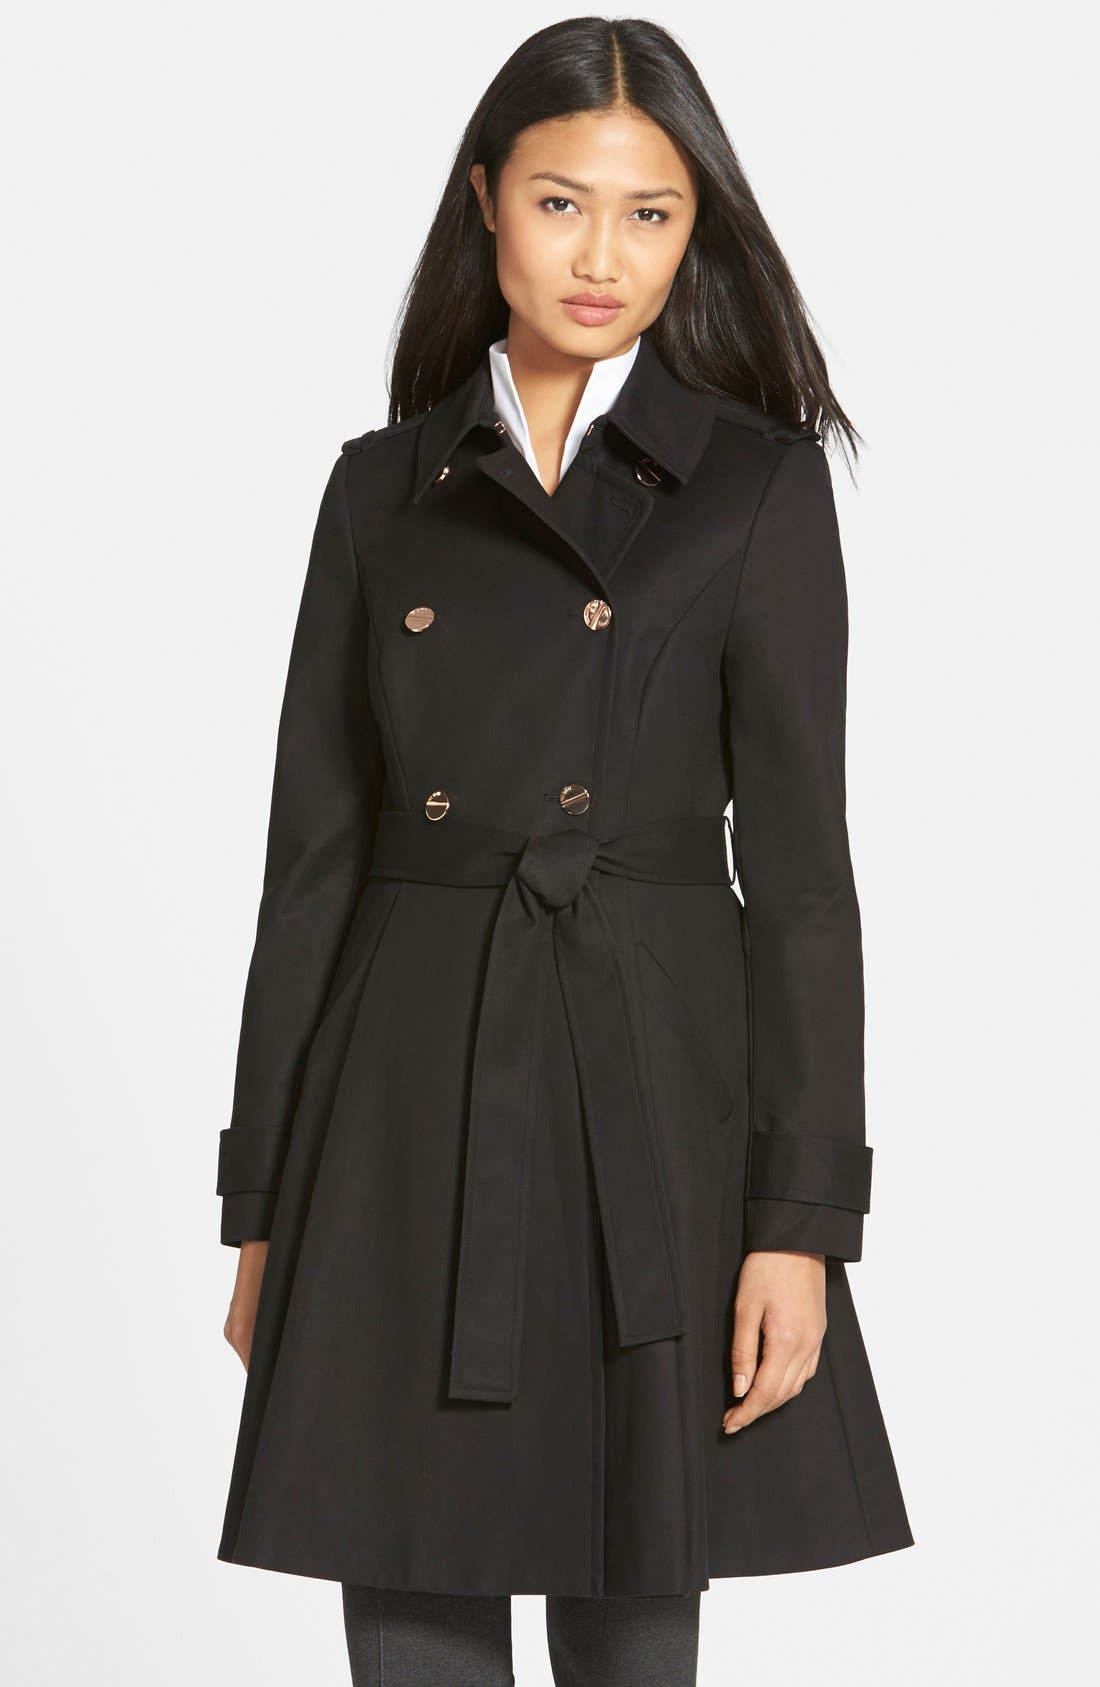 TED BAKER LONDON Flared Skirt Trench Coat, Main, color, 001